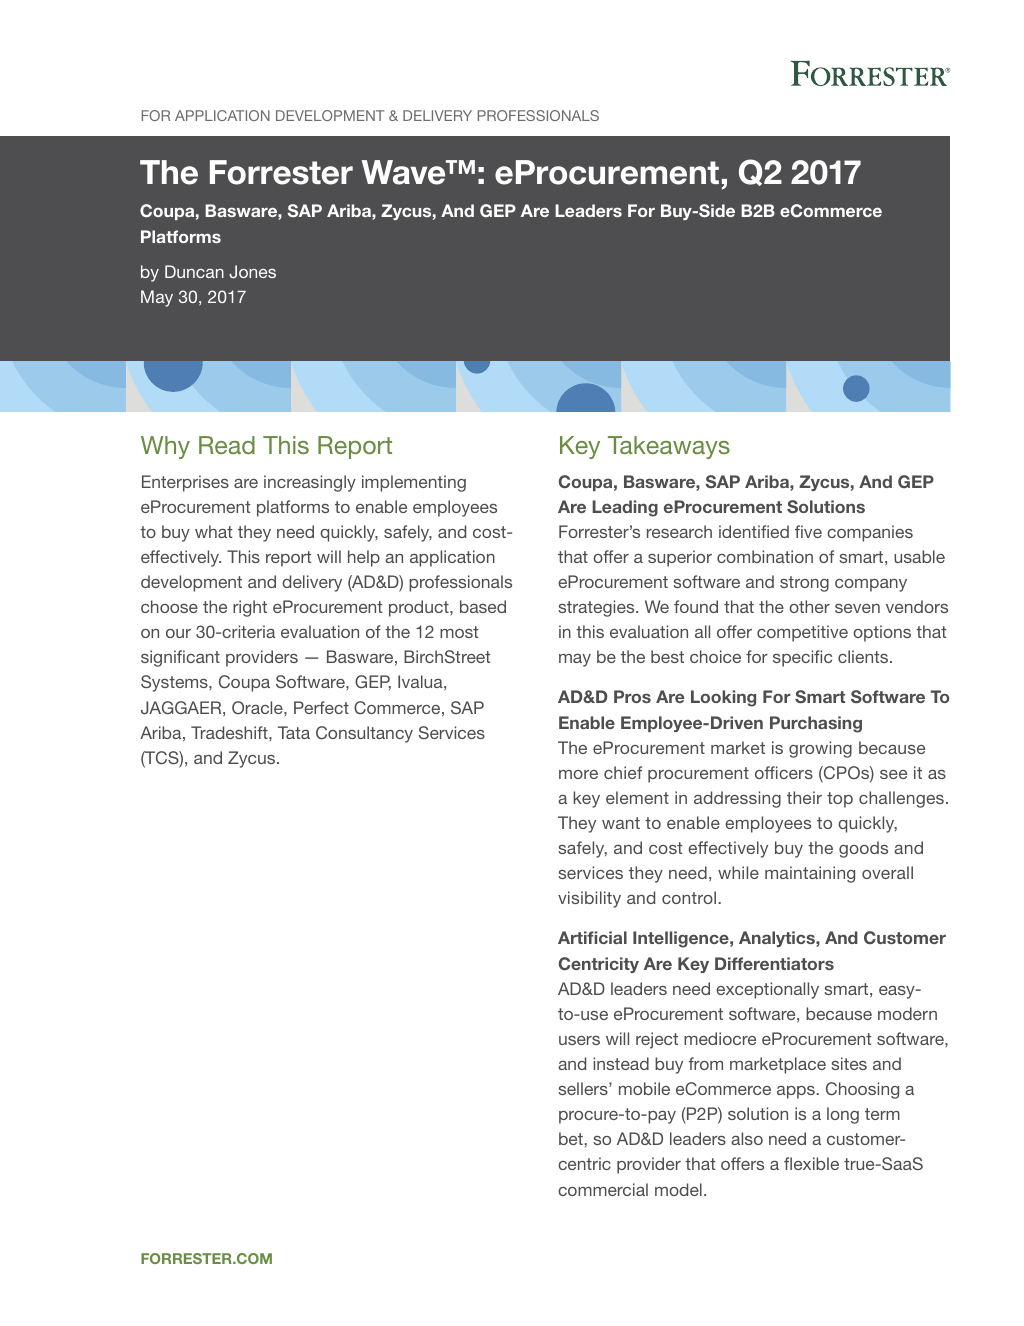 E procurement solutions to manage compliance basware analyst report the forrester wave 2017 fandeluxe Choice Image